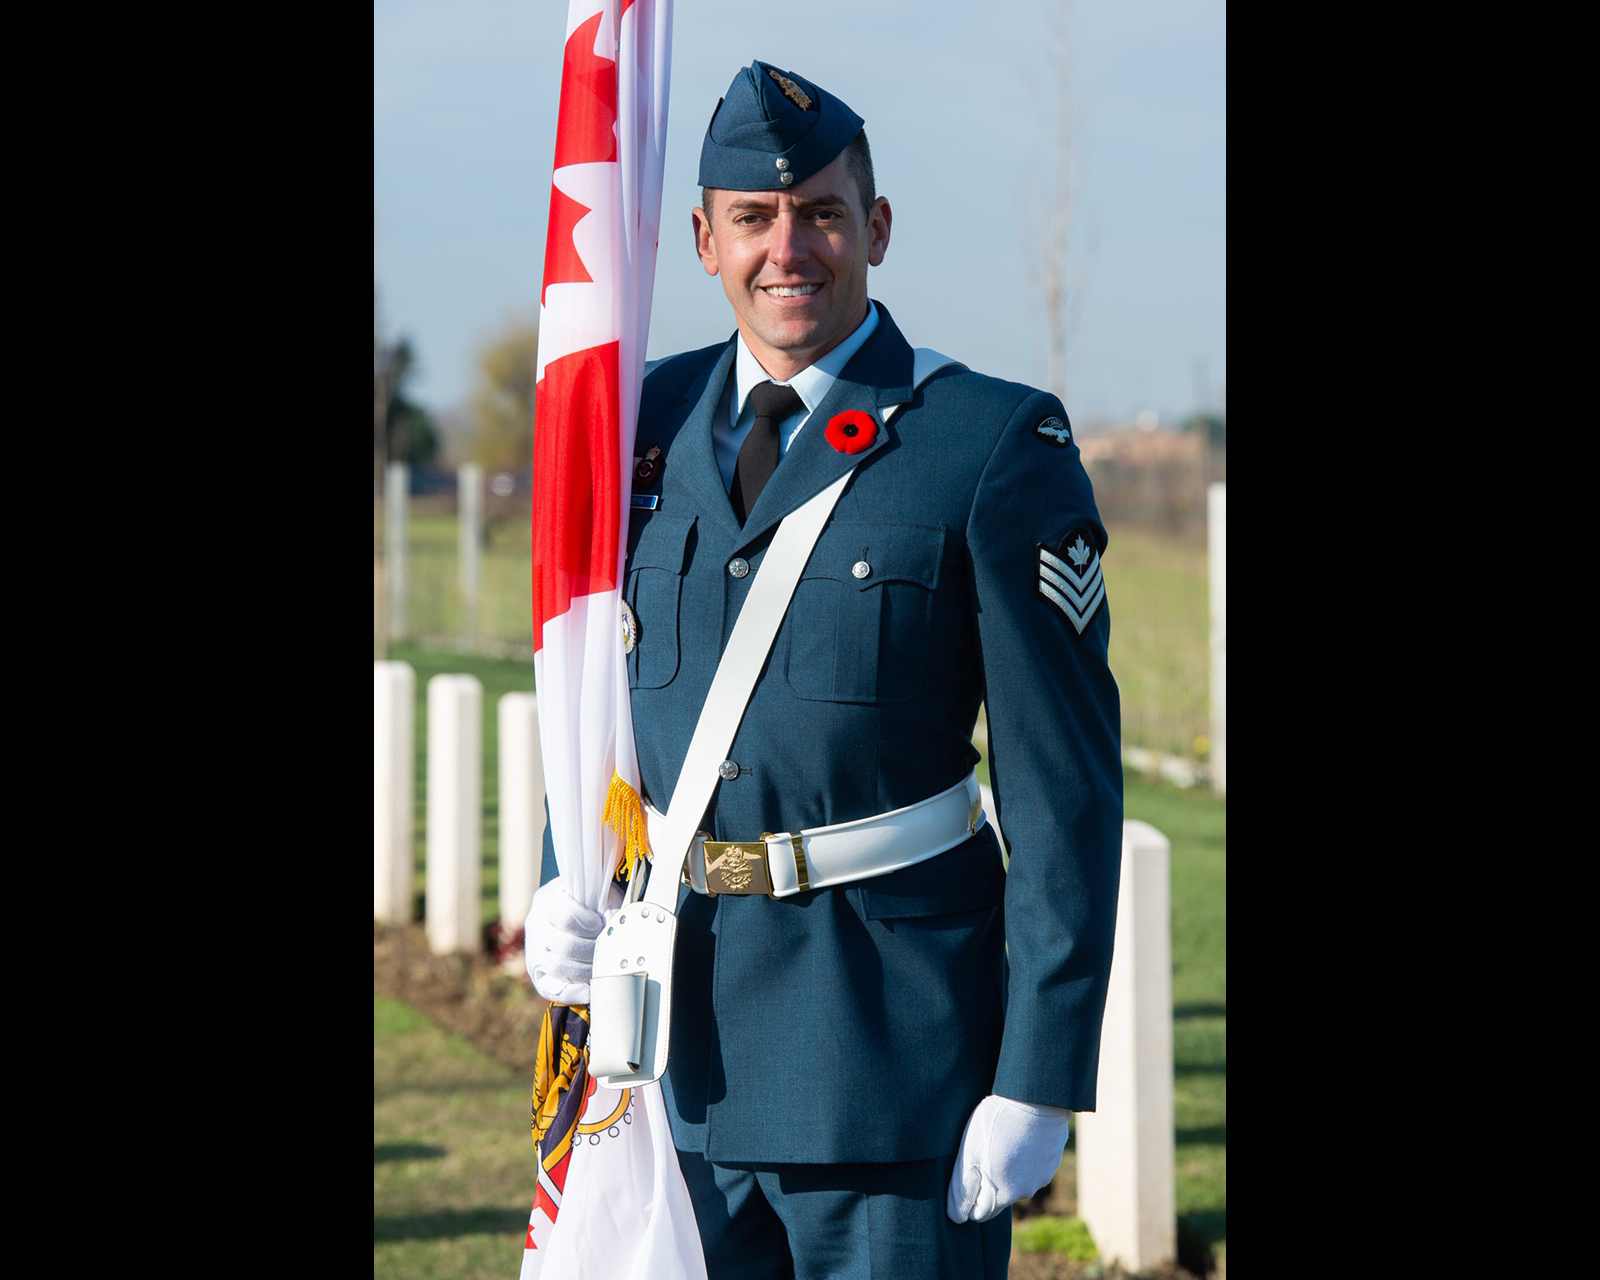 A man wearing an RCAF uniform holds a flag as he stands in a cemetery.